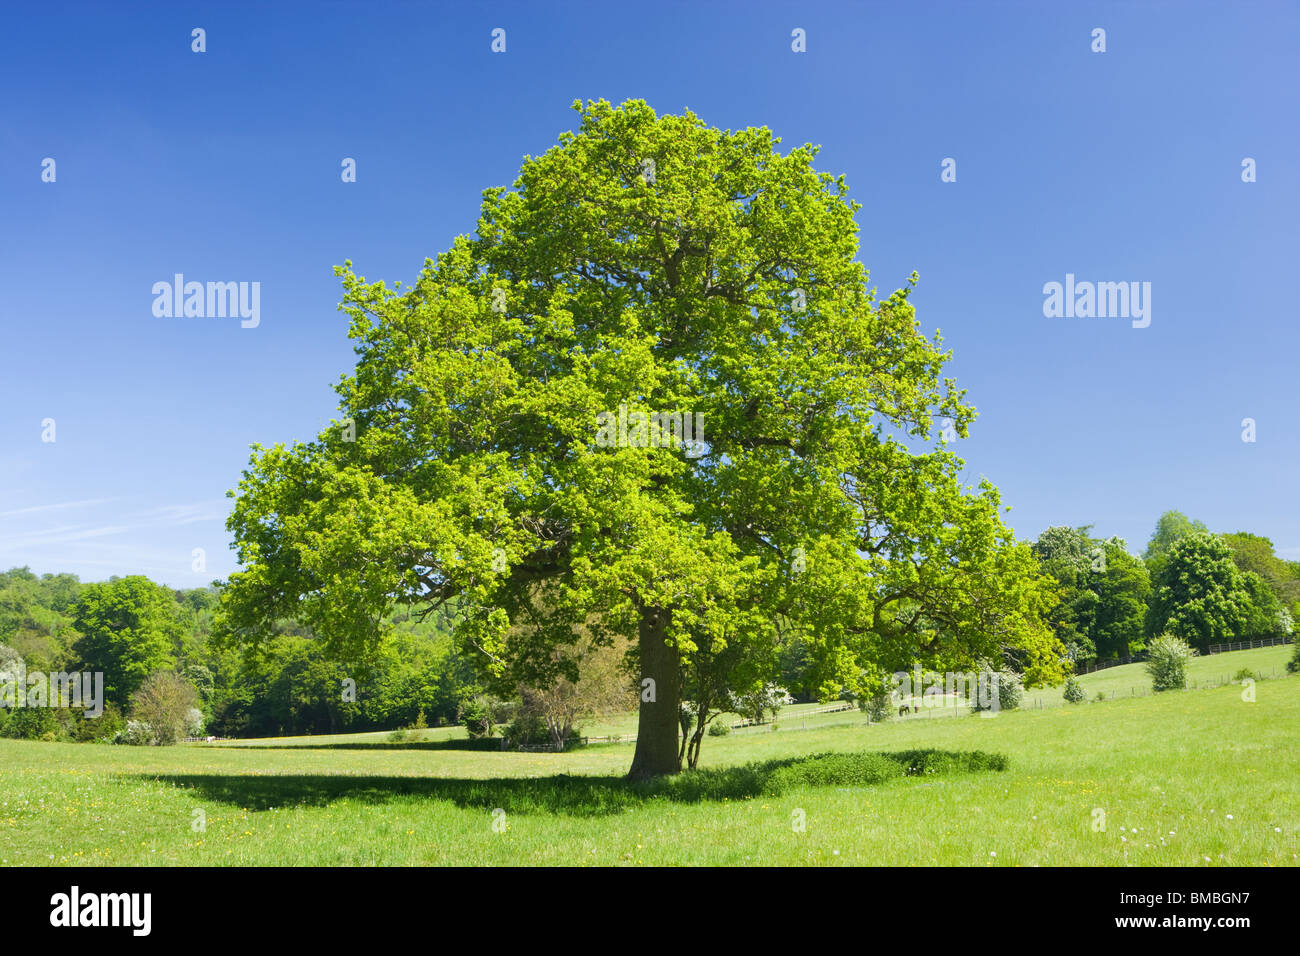 English Oak Tree Stock Photos & English Oak Tree Stock Images - Alamy